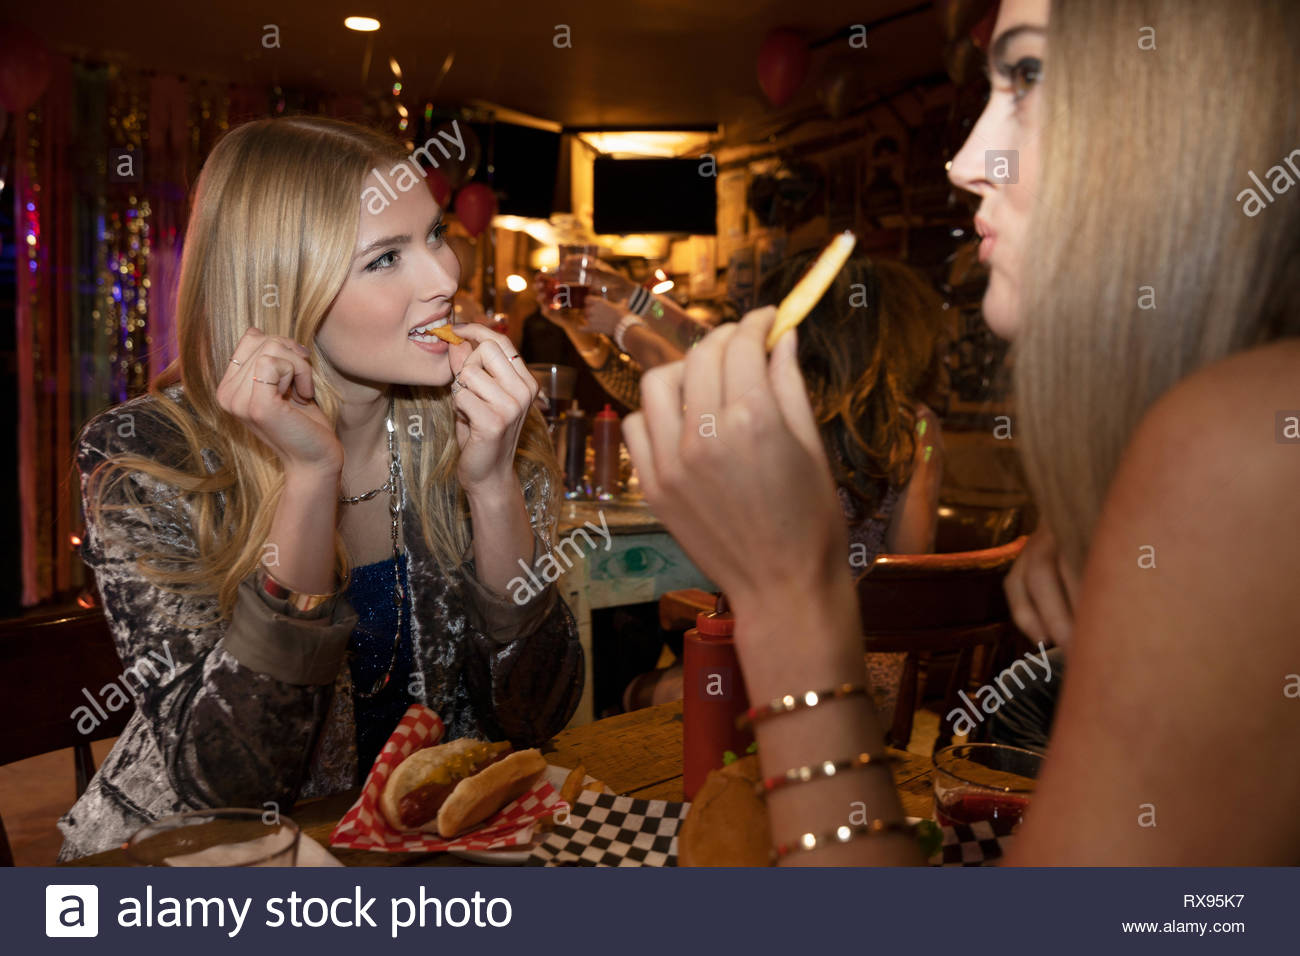 Women friends eating at late night diner - Stock Image